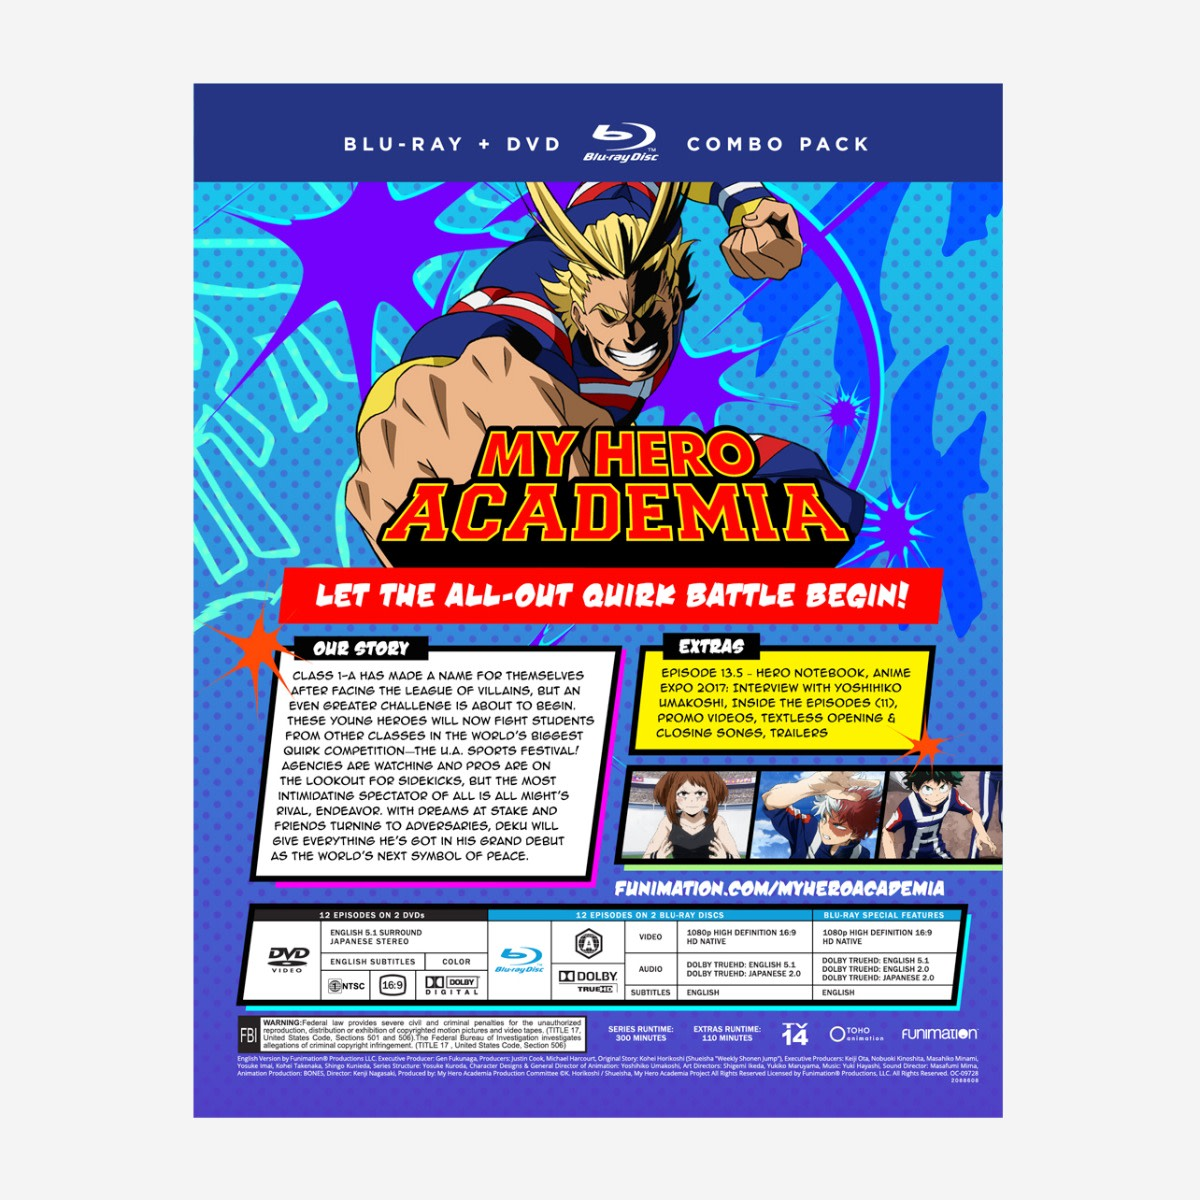 My Hero Academia: Season 2, Part 1 (Blu-ray / DVD Combo